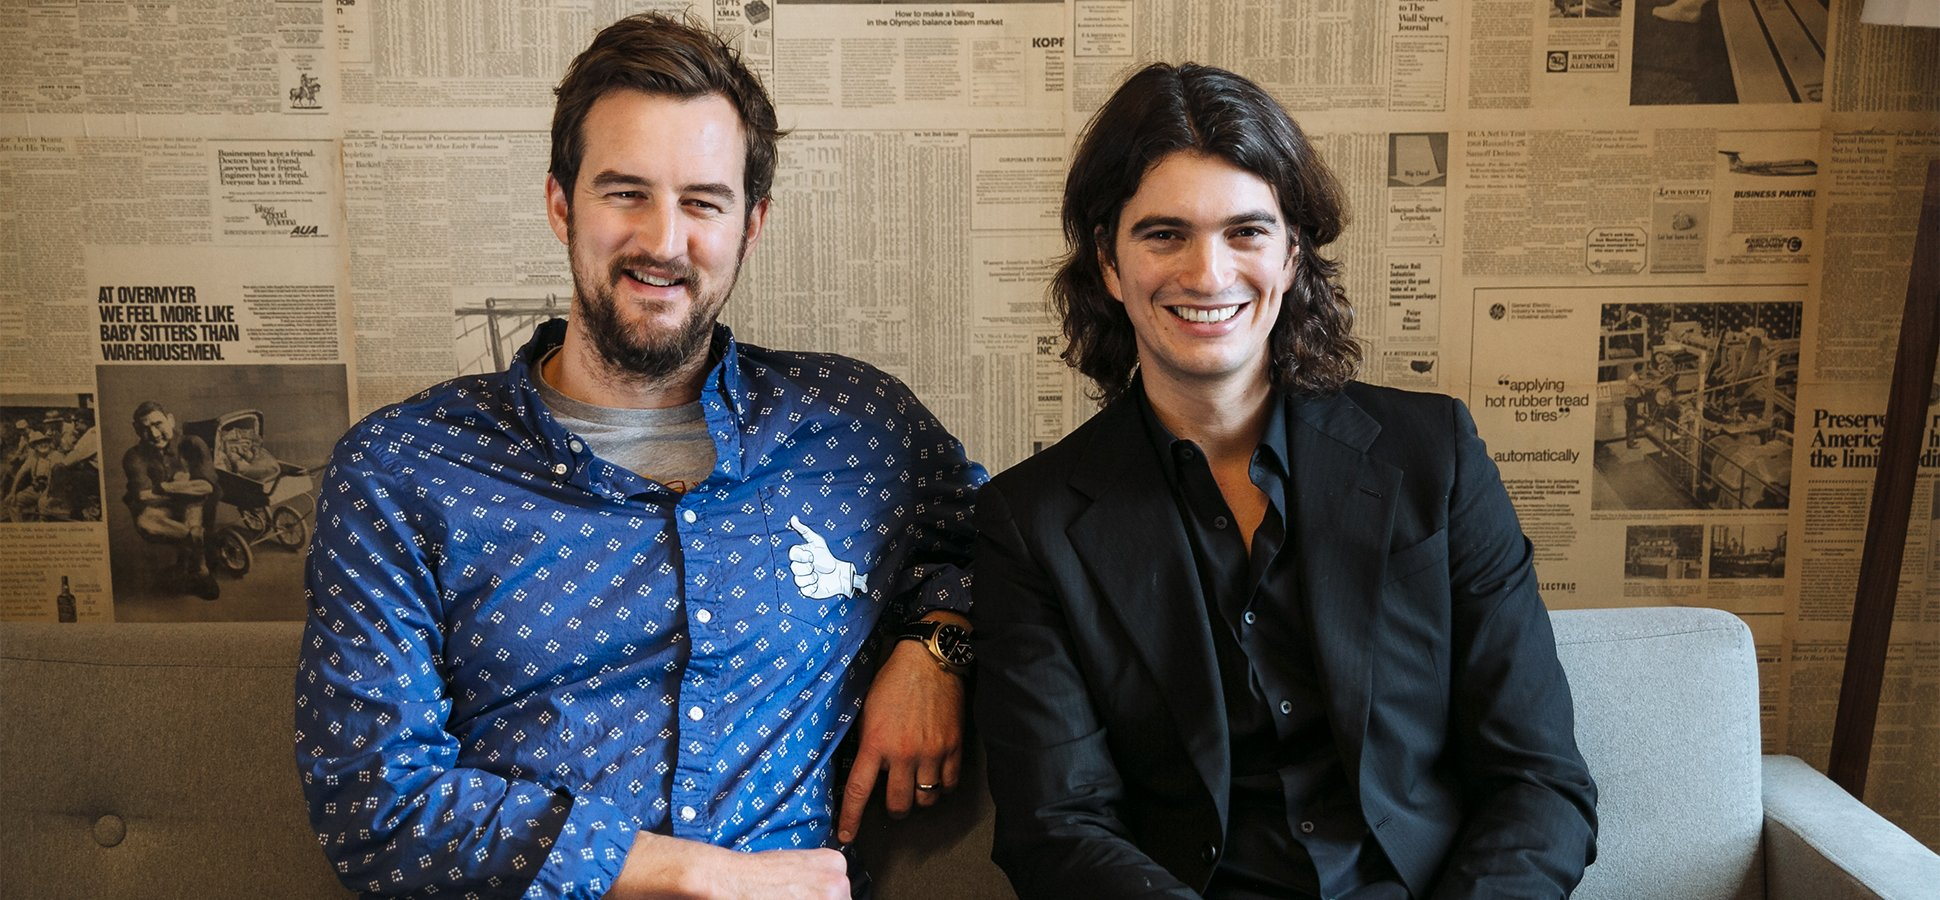 Investors Are Betting Billions That WeWork Isn't Just a Real Estate Company. Here's Why